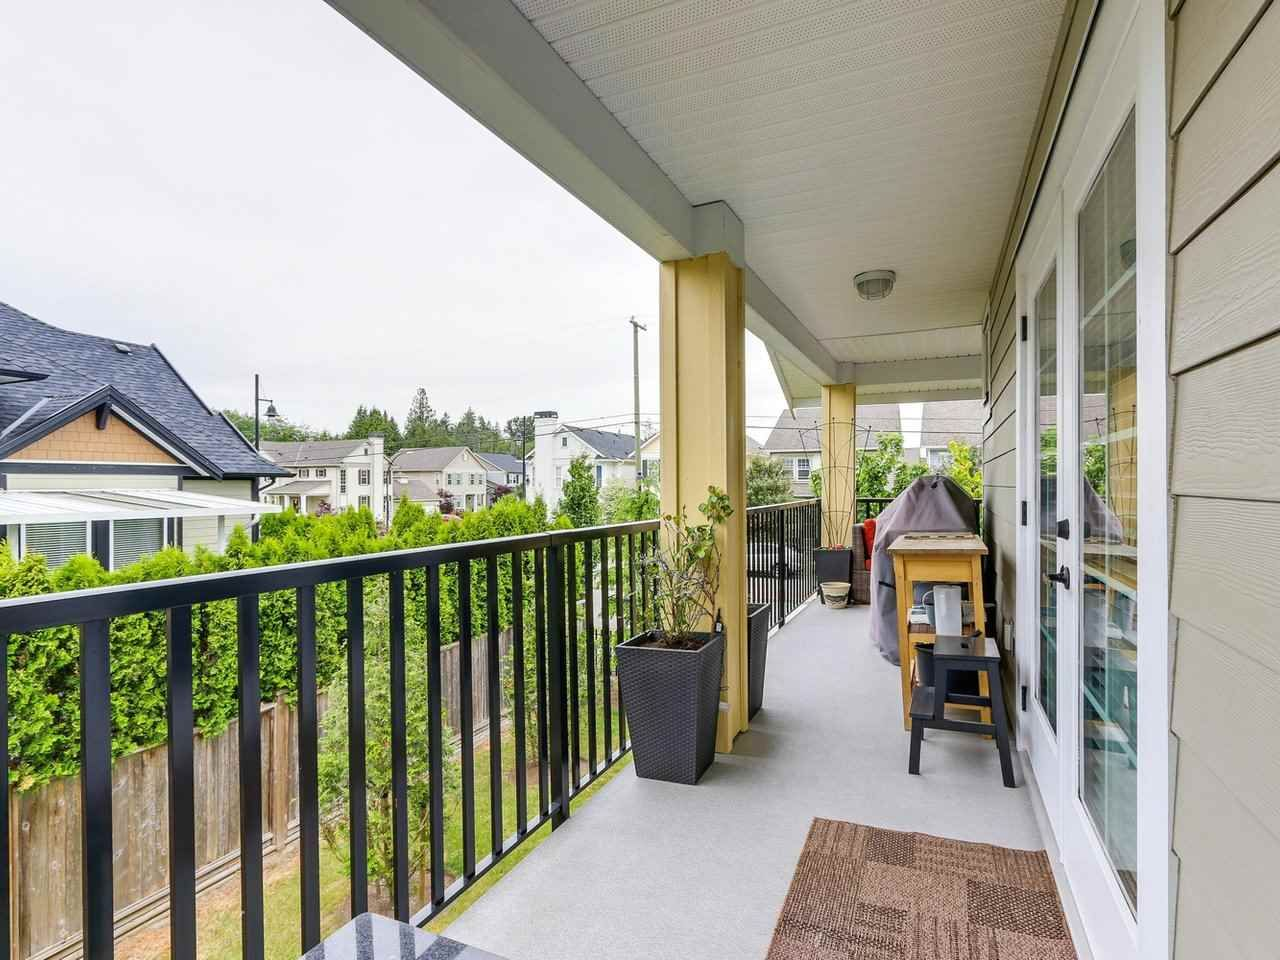 """Photo 17: Photos: 31 17171 2B Avenue in Surrey: Pacific Douglas Townhouse for sale in """"AUGUSTA TOWNHOUSES"""" (South Surrey White Rock)  : MLS®# R2280398"""